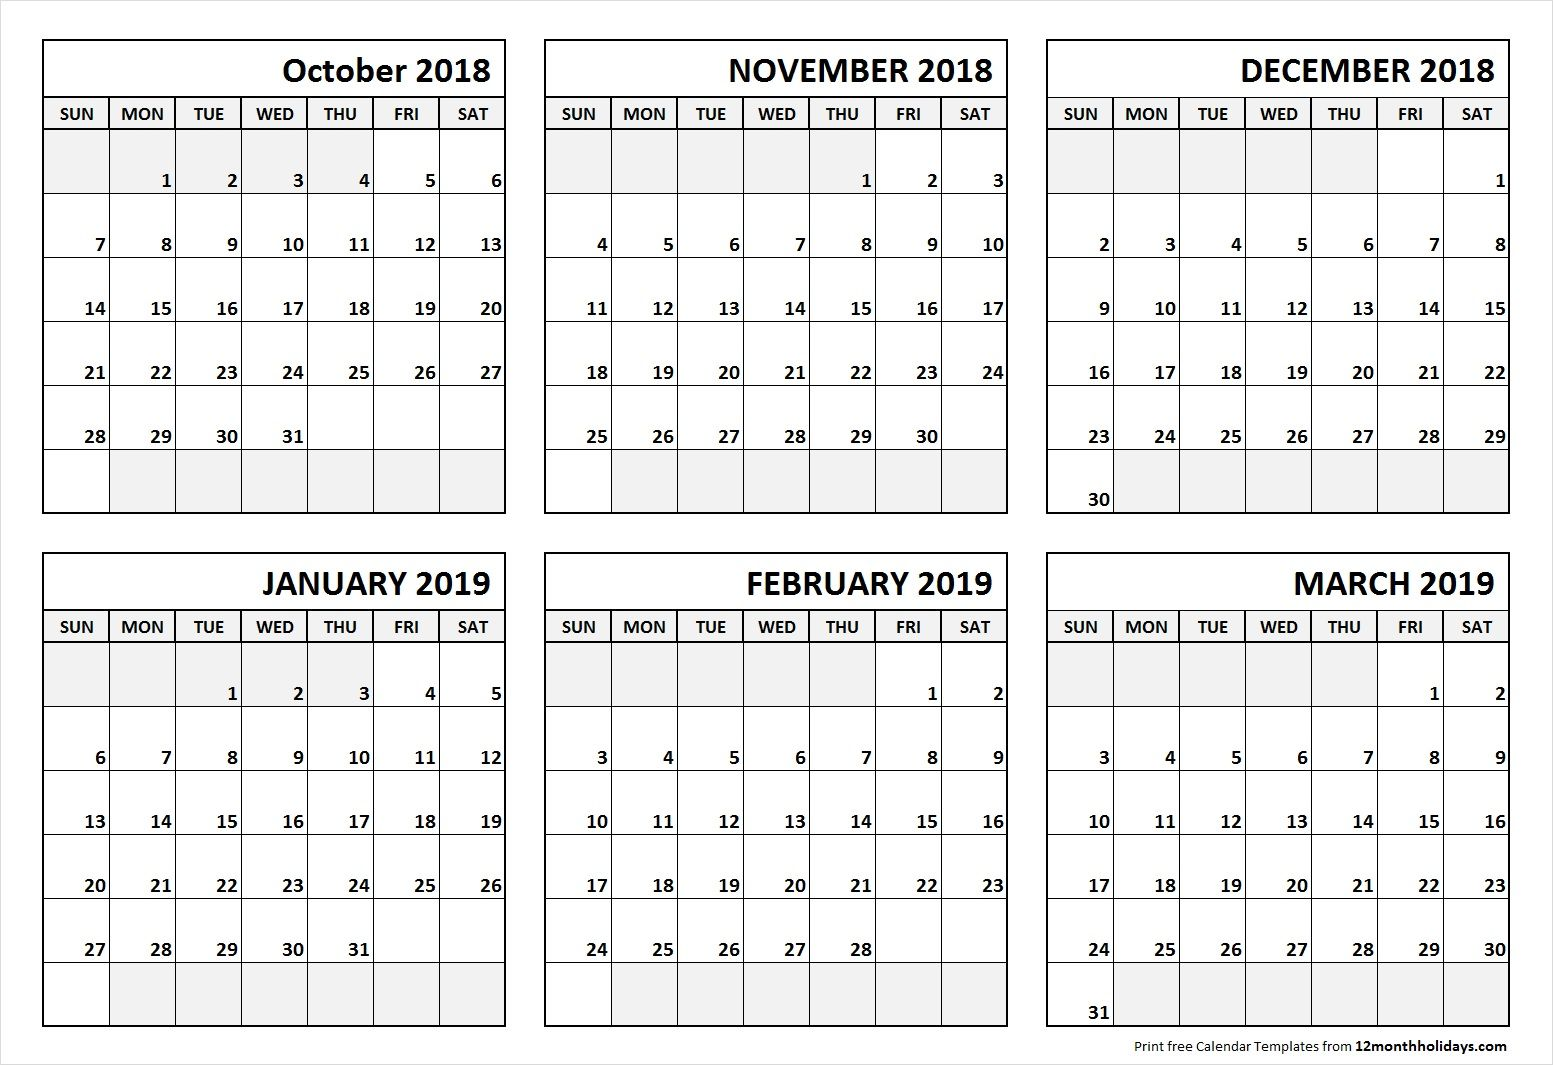 6 Month Calendar October 2018 To March 2019 June 2019 Calendar